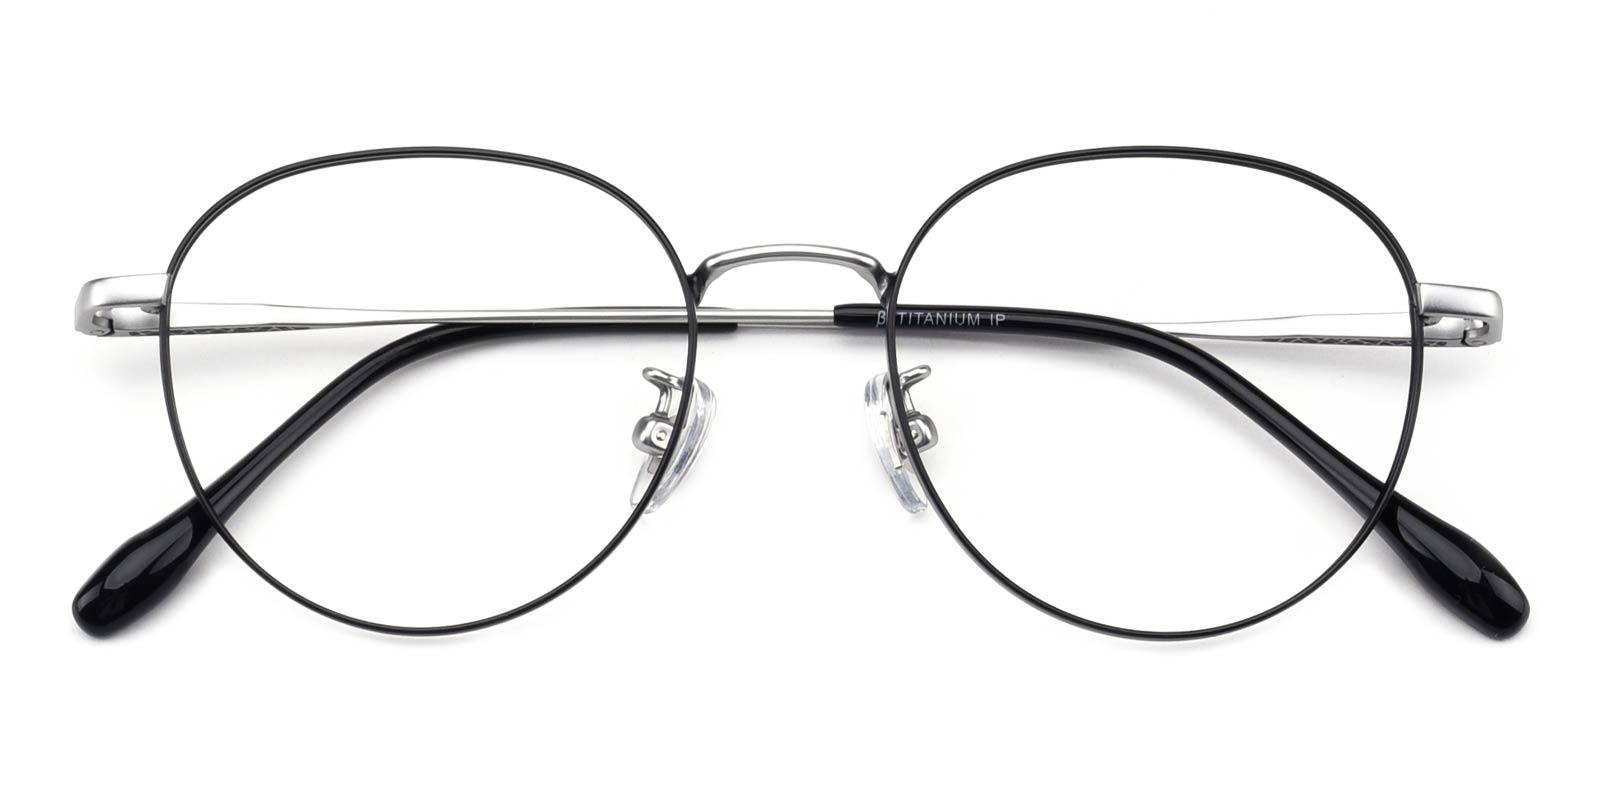 North-Black-Round-Titanium-Eyeglasses-detail